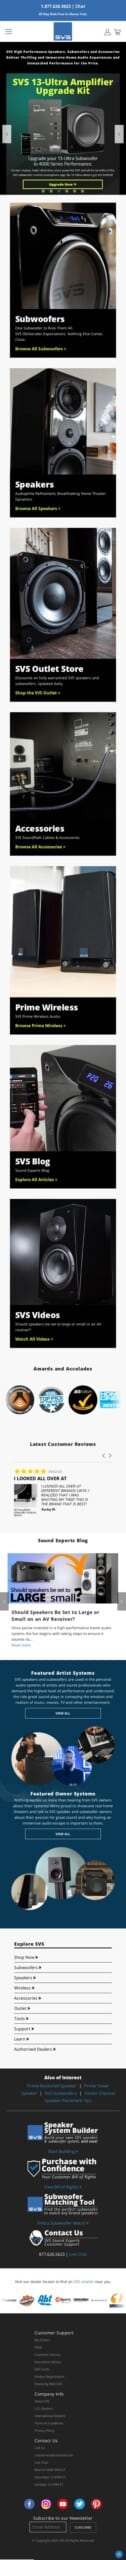 SVS Home Audio Speakers & Subwoofers Coupon